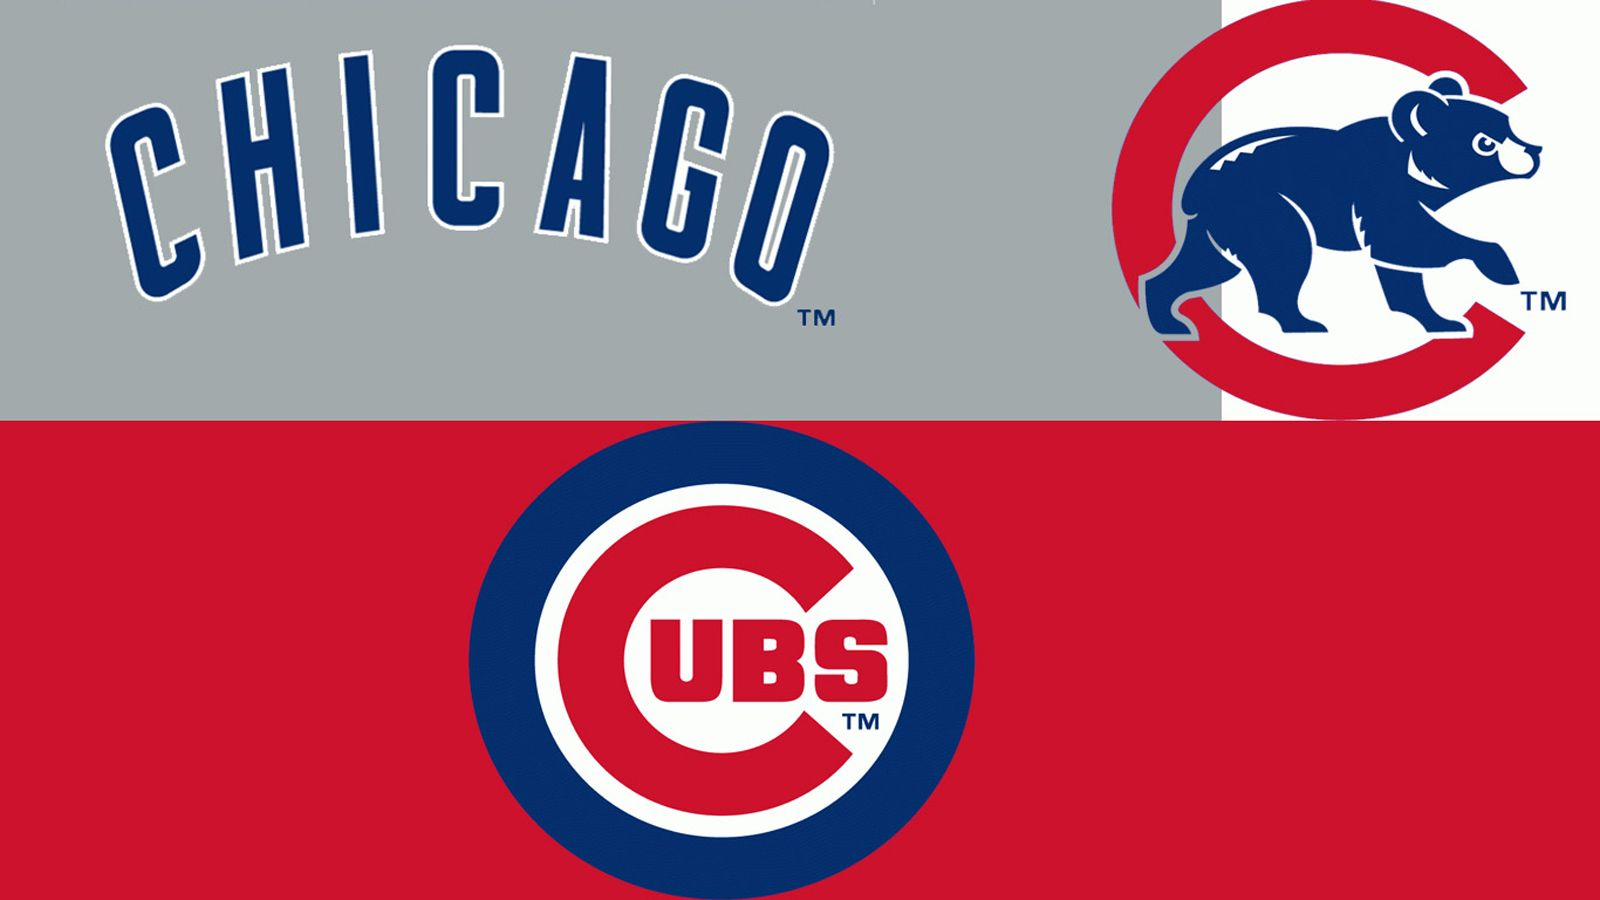 Chicago Cubs Wallpaper For Phones Cubs Wallpaper Chicago Cubs Wallpaper Chicago Cubs